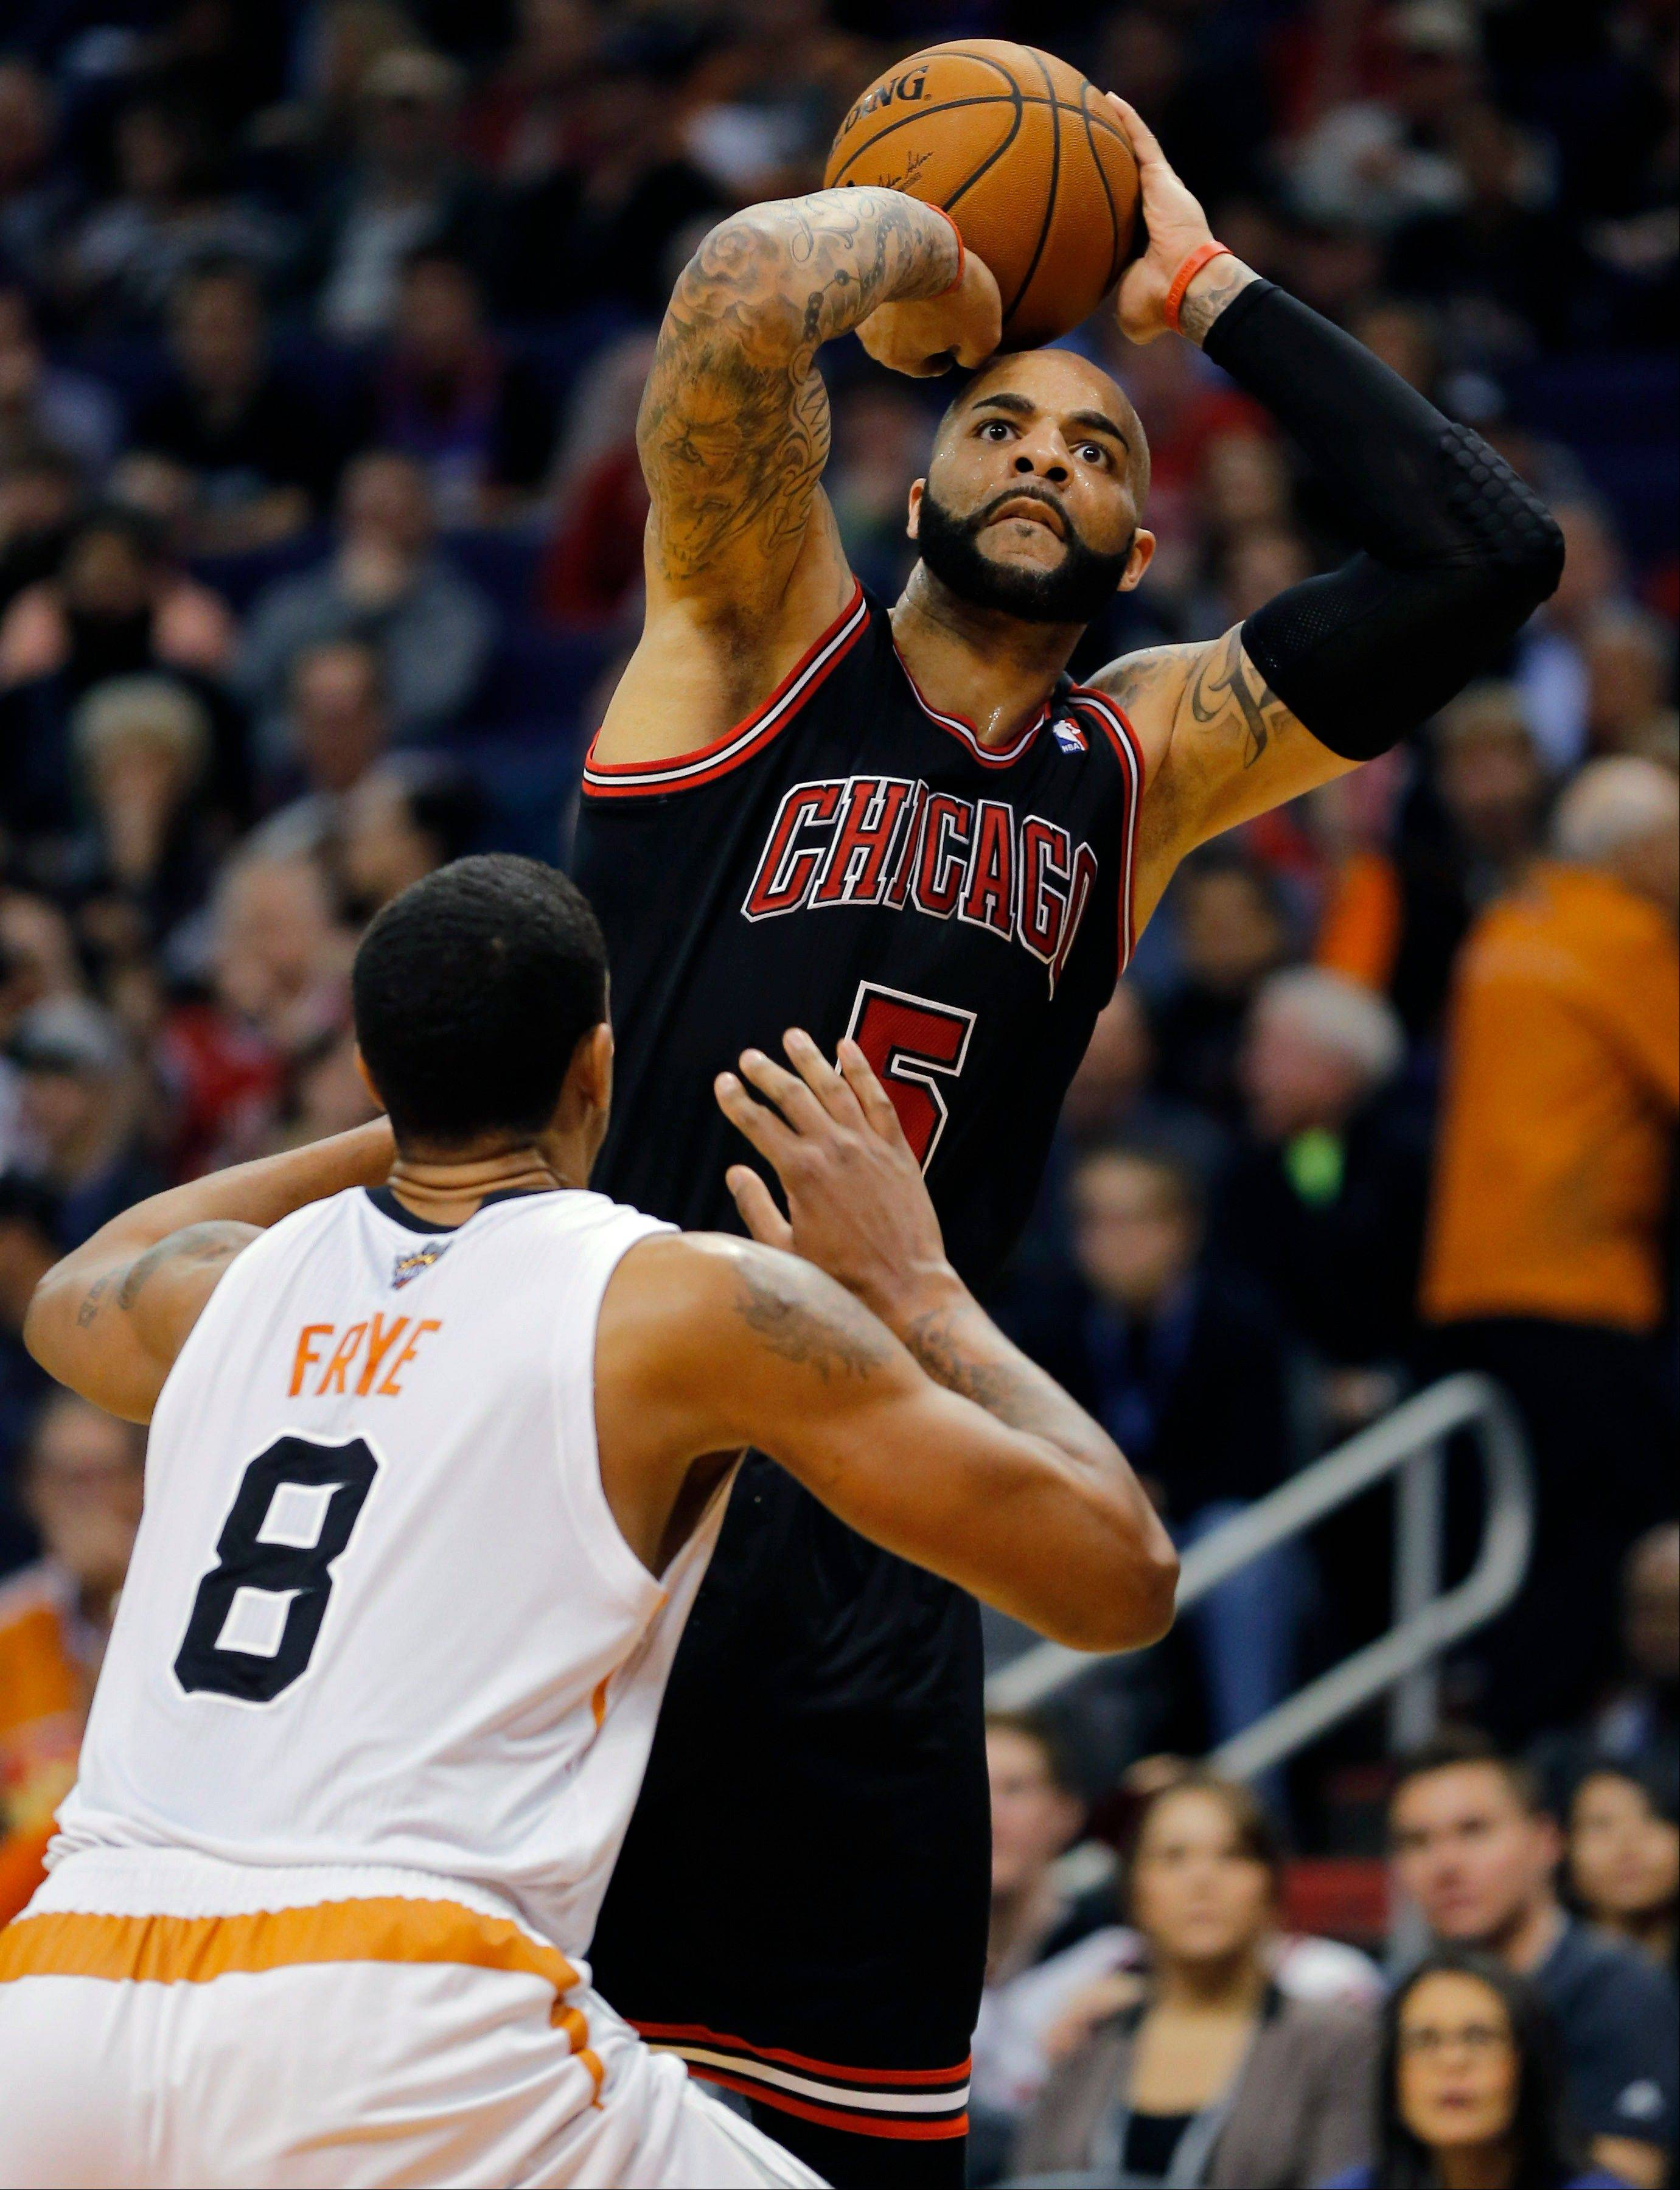 Chicago Bulls' Carlos Boozer (5) shoots over Phoenix Suns' Channing Frye (8) during Tuesday night's game in Phoenix. The Bulls beat the Suns 101-92.